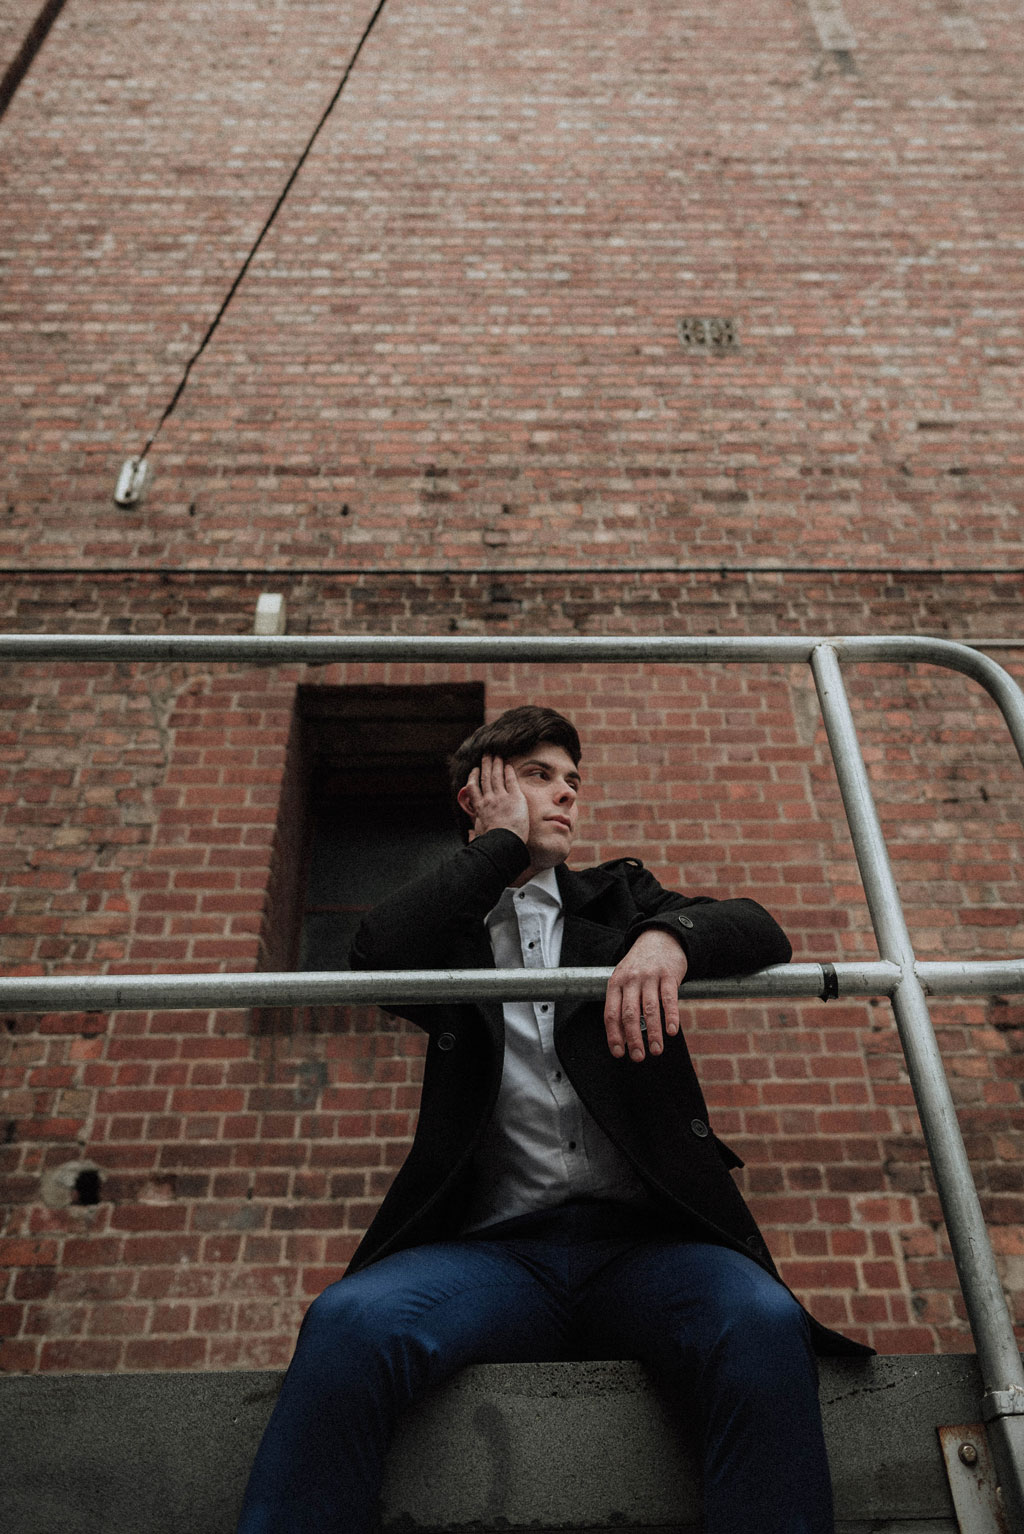 Young man with an arrogant expression on a fire escape